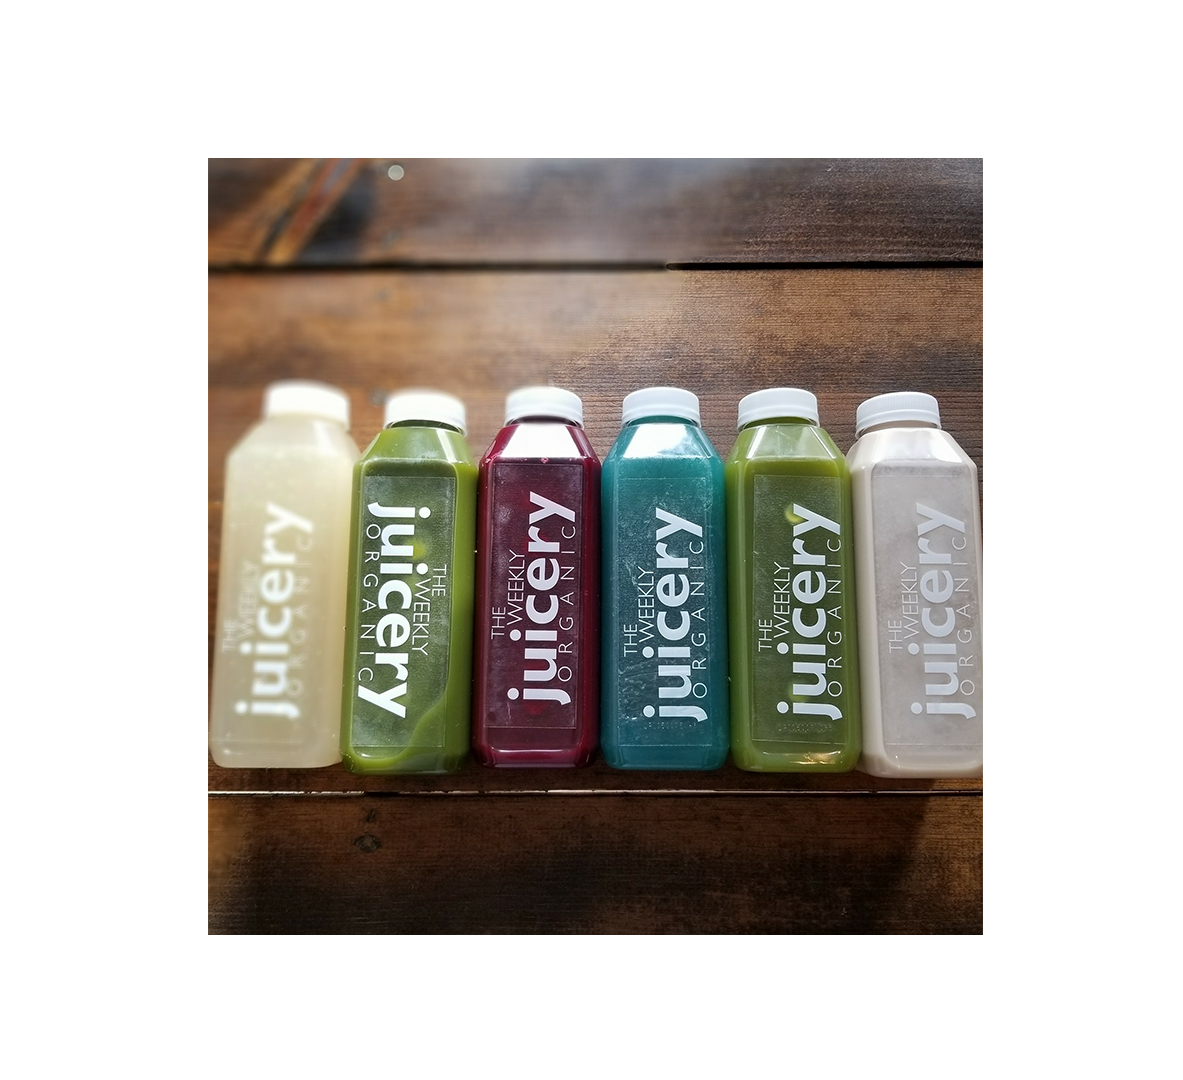 Juicery Juices with Different Flavors